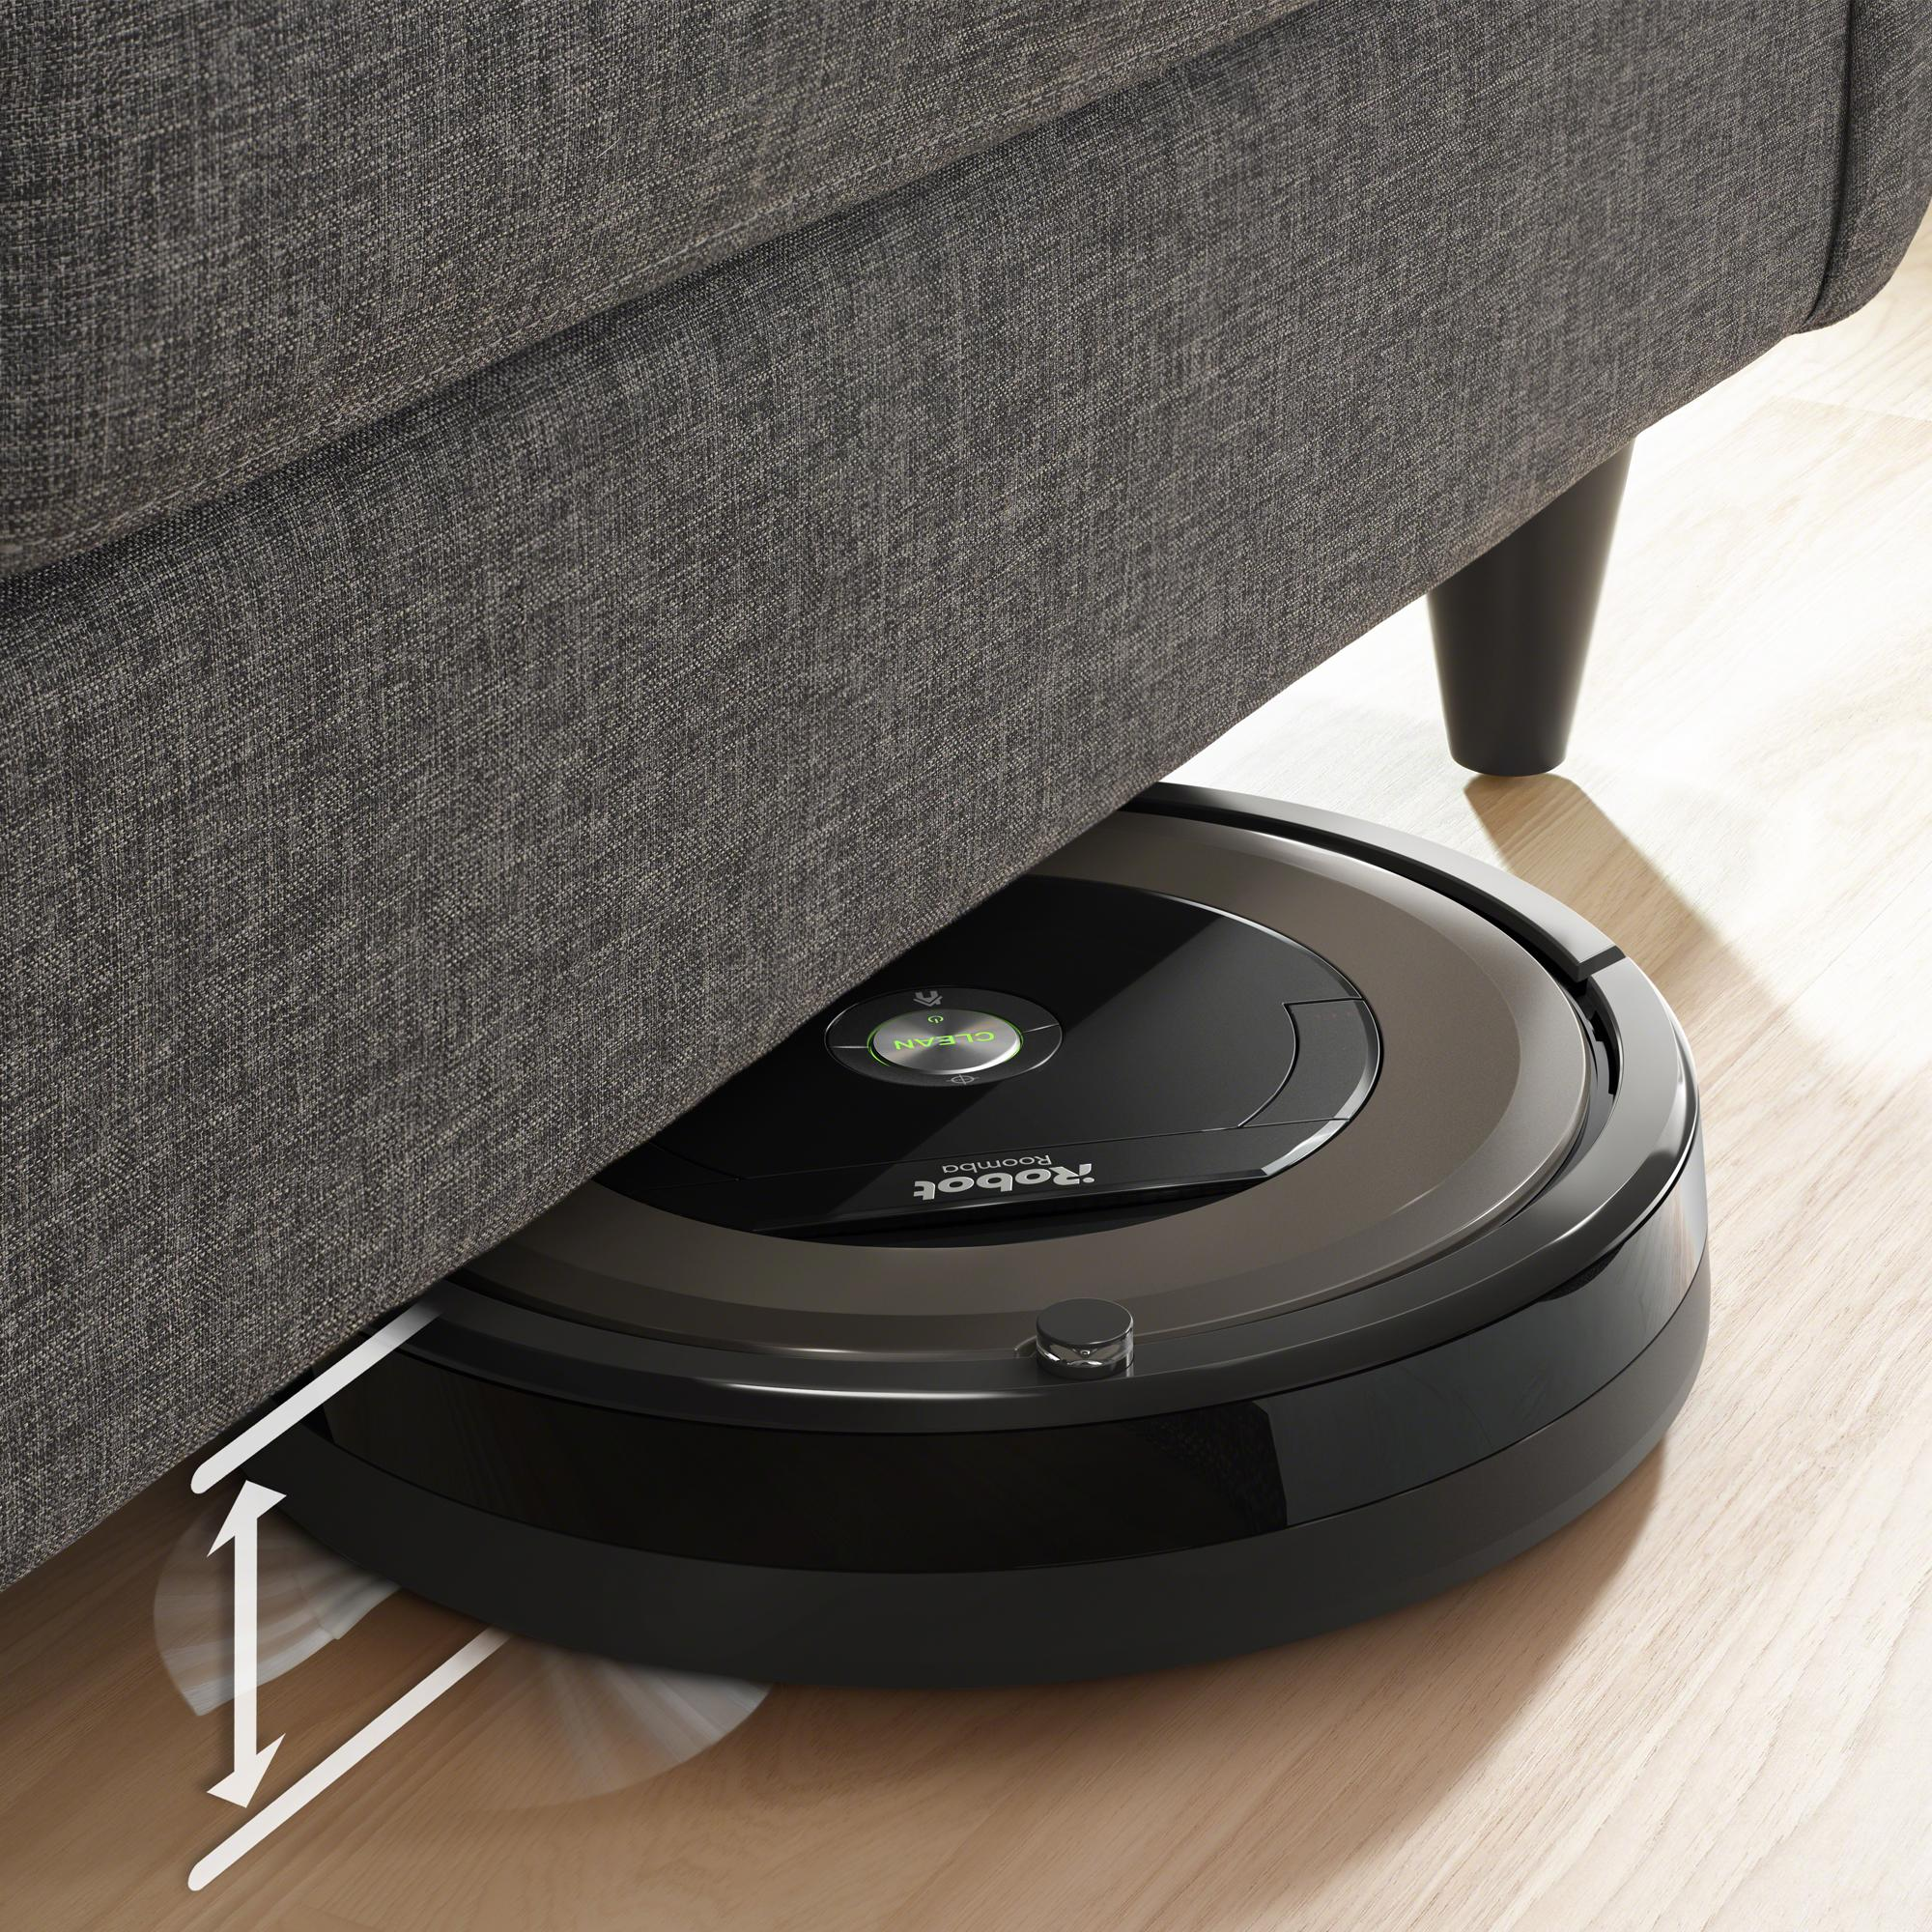 Irobot Roomba 890 Wi Fi Connected Robotic Vacuum Cleaner